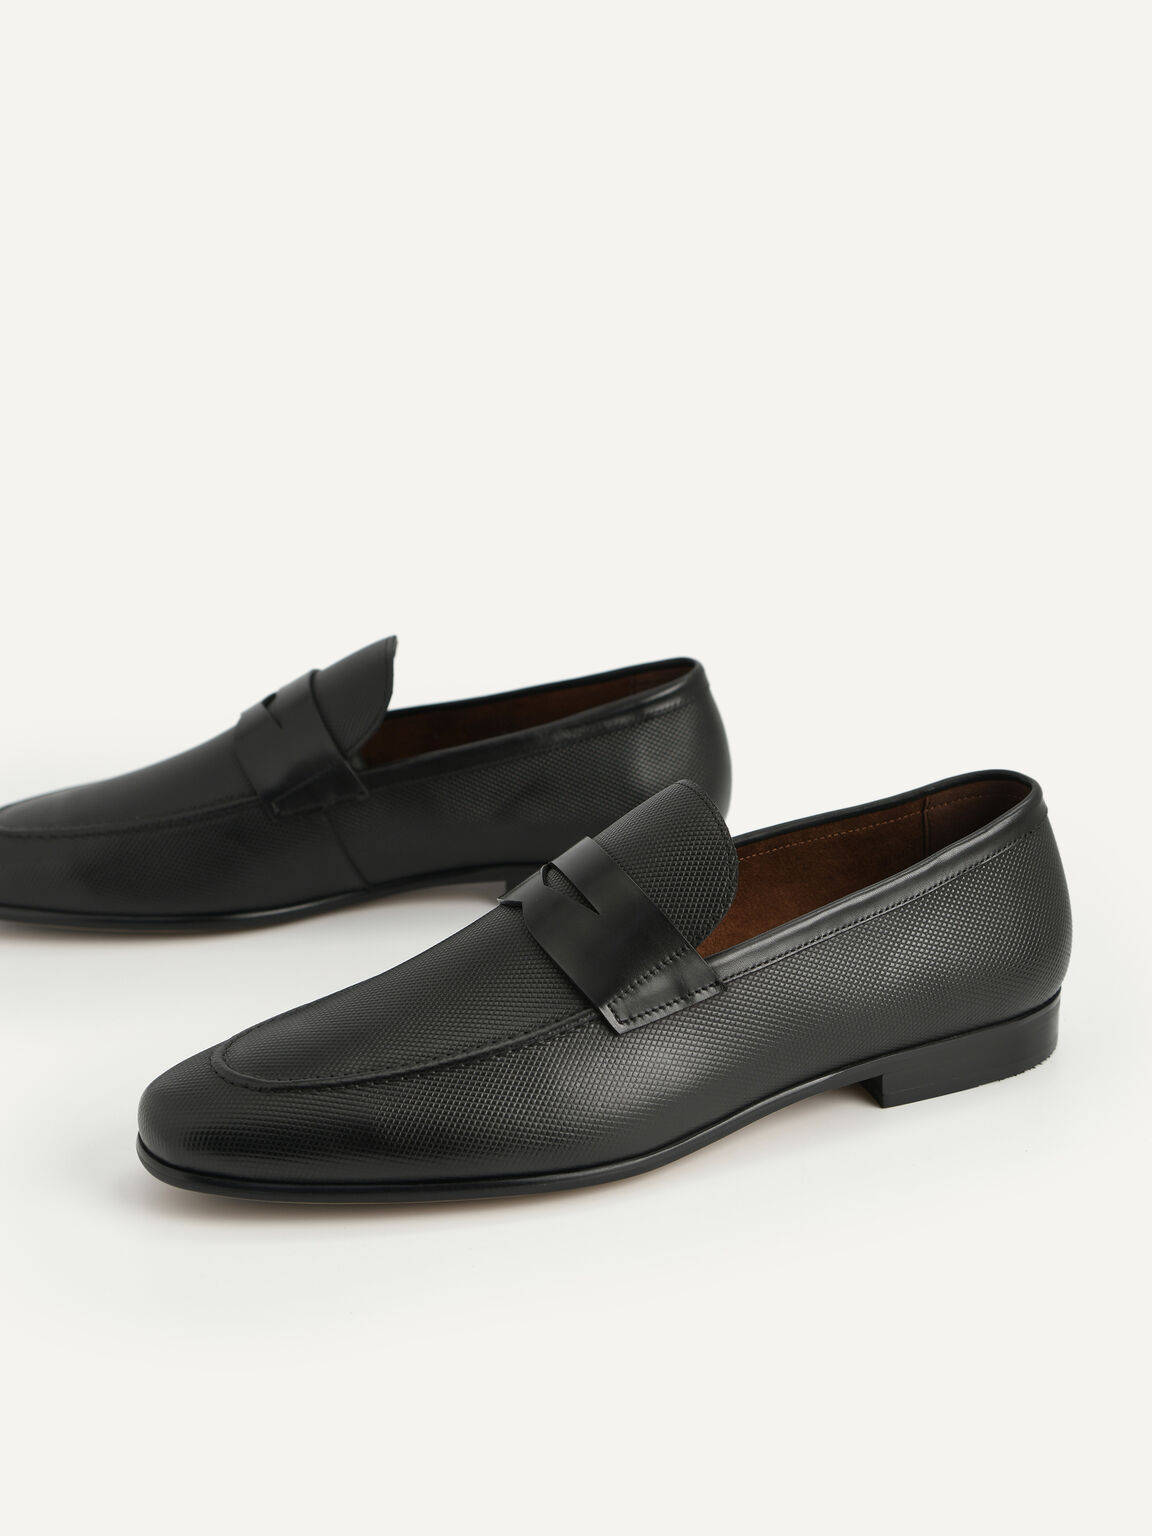 Textured Leather Penny Loafers, Black, hi-res